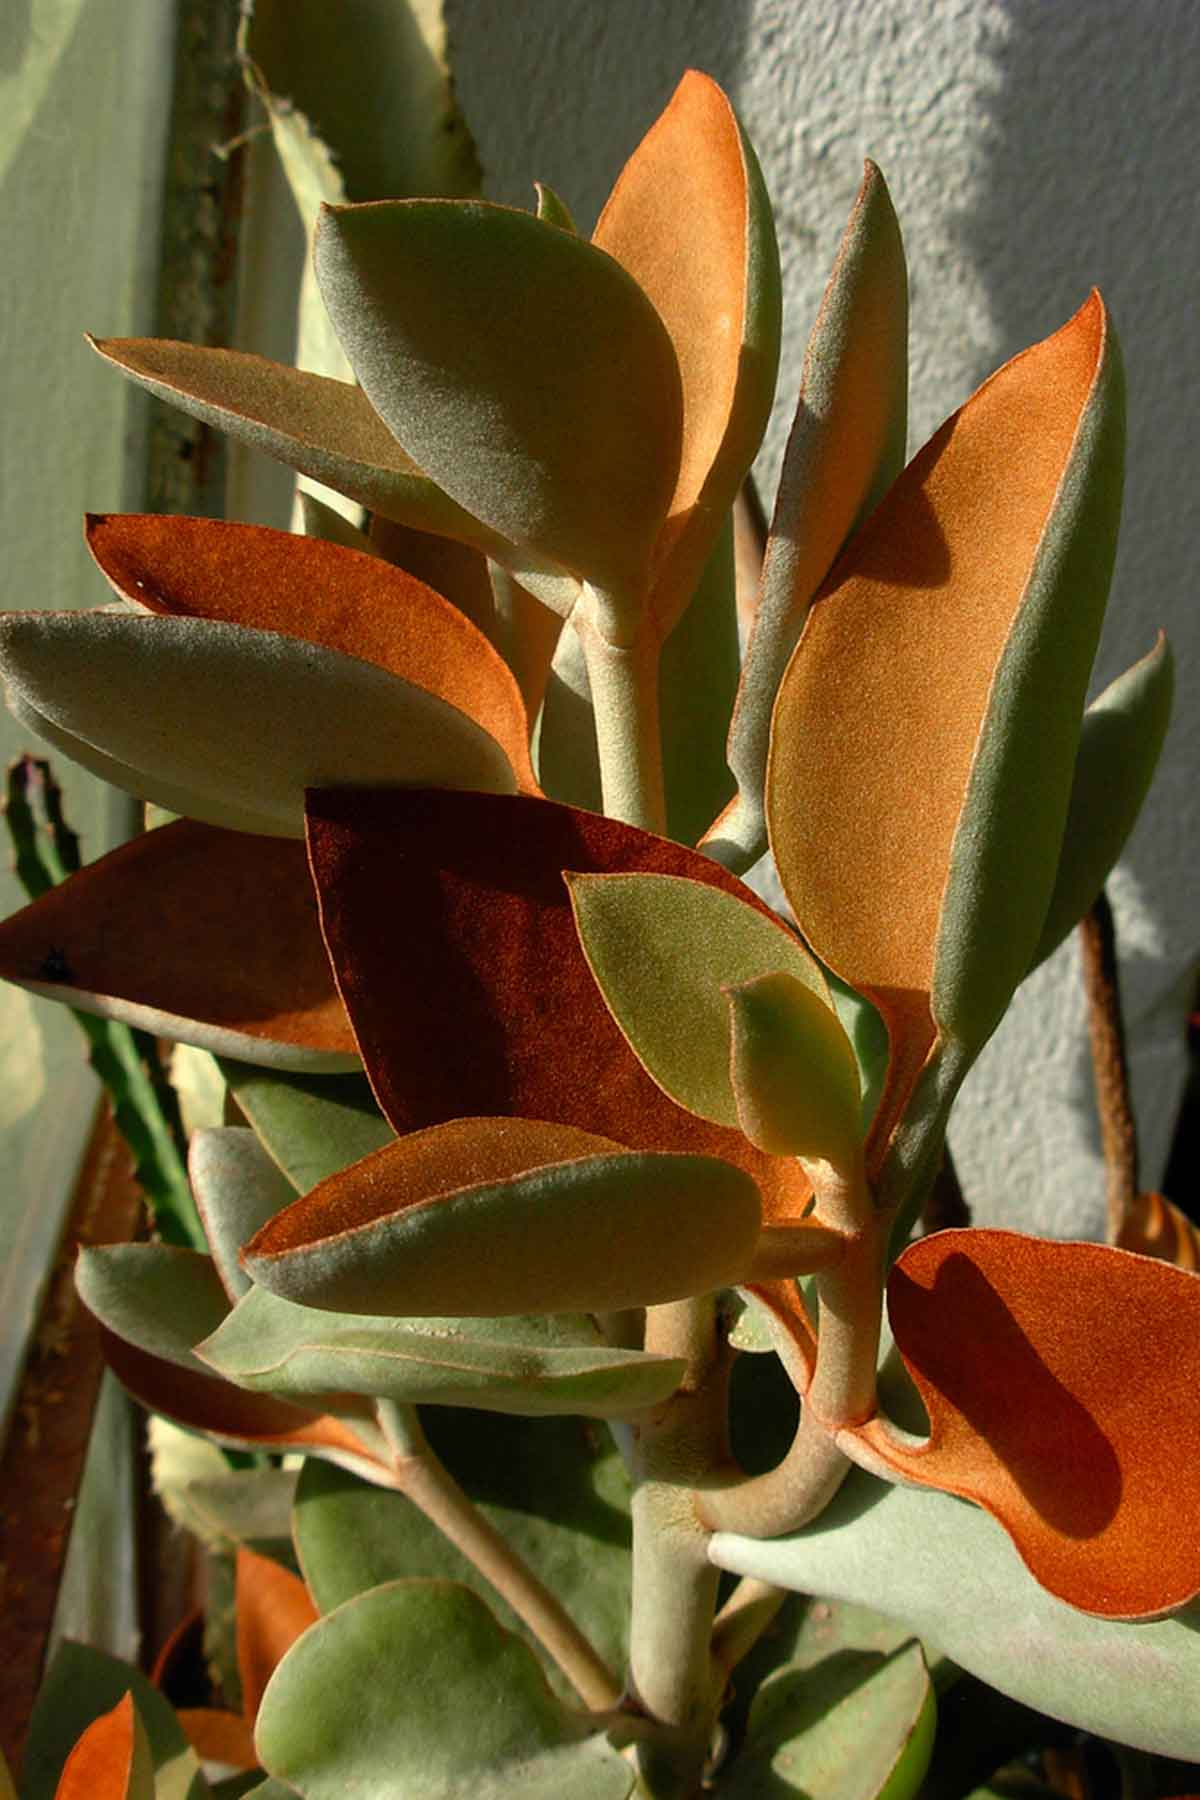 The Kalanchoe Orgyalis makes a great statement plant. image from taurielloanimaliorchidee on Flickr